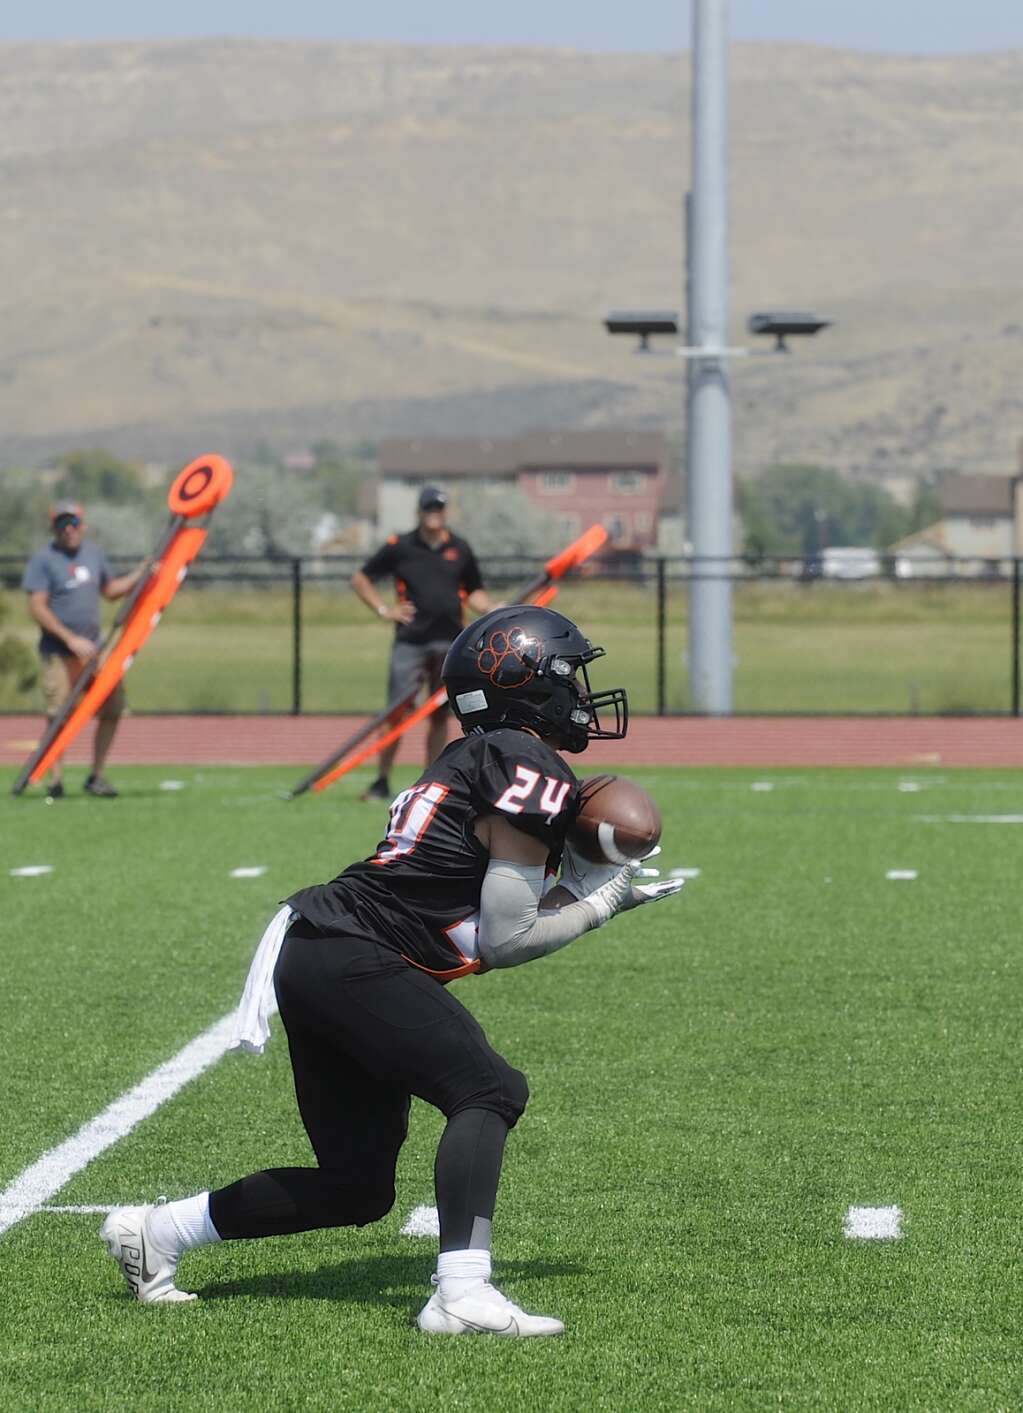 Sabyn Hager catches a kickoff during the Hayden football  home opener against Mancos on Saturday afternoon at Hayden Valley School. (Photo by Shelby Reardon)